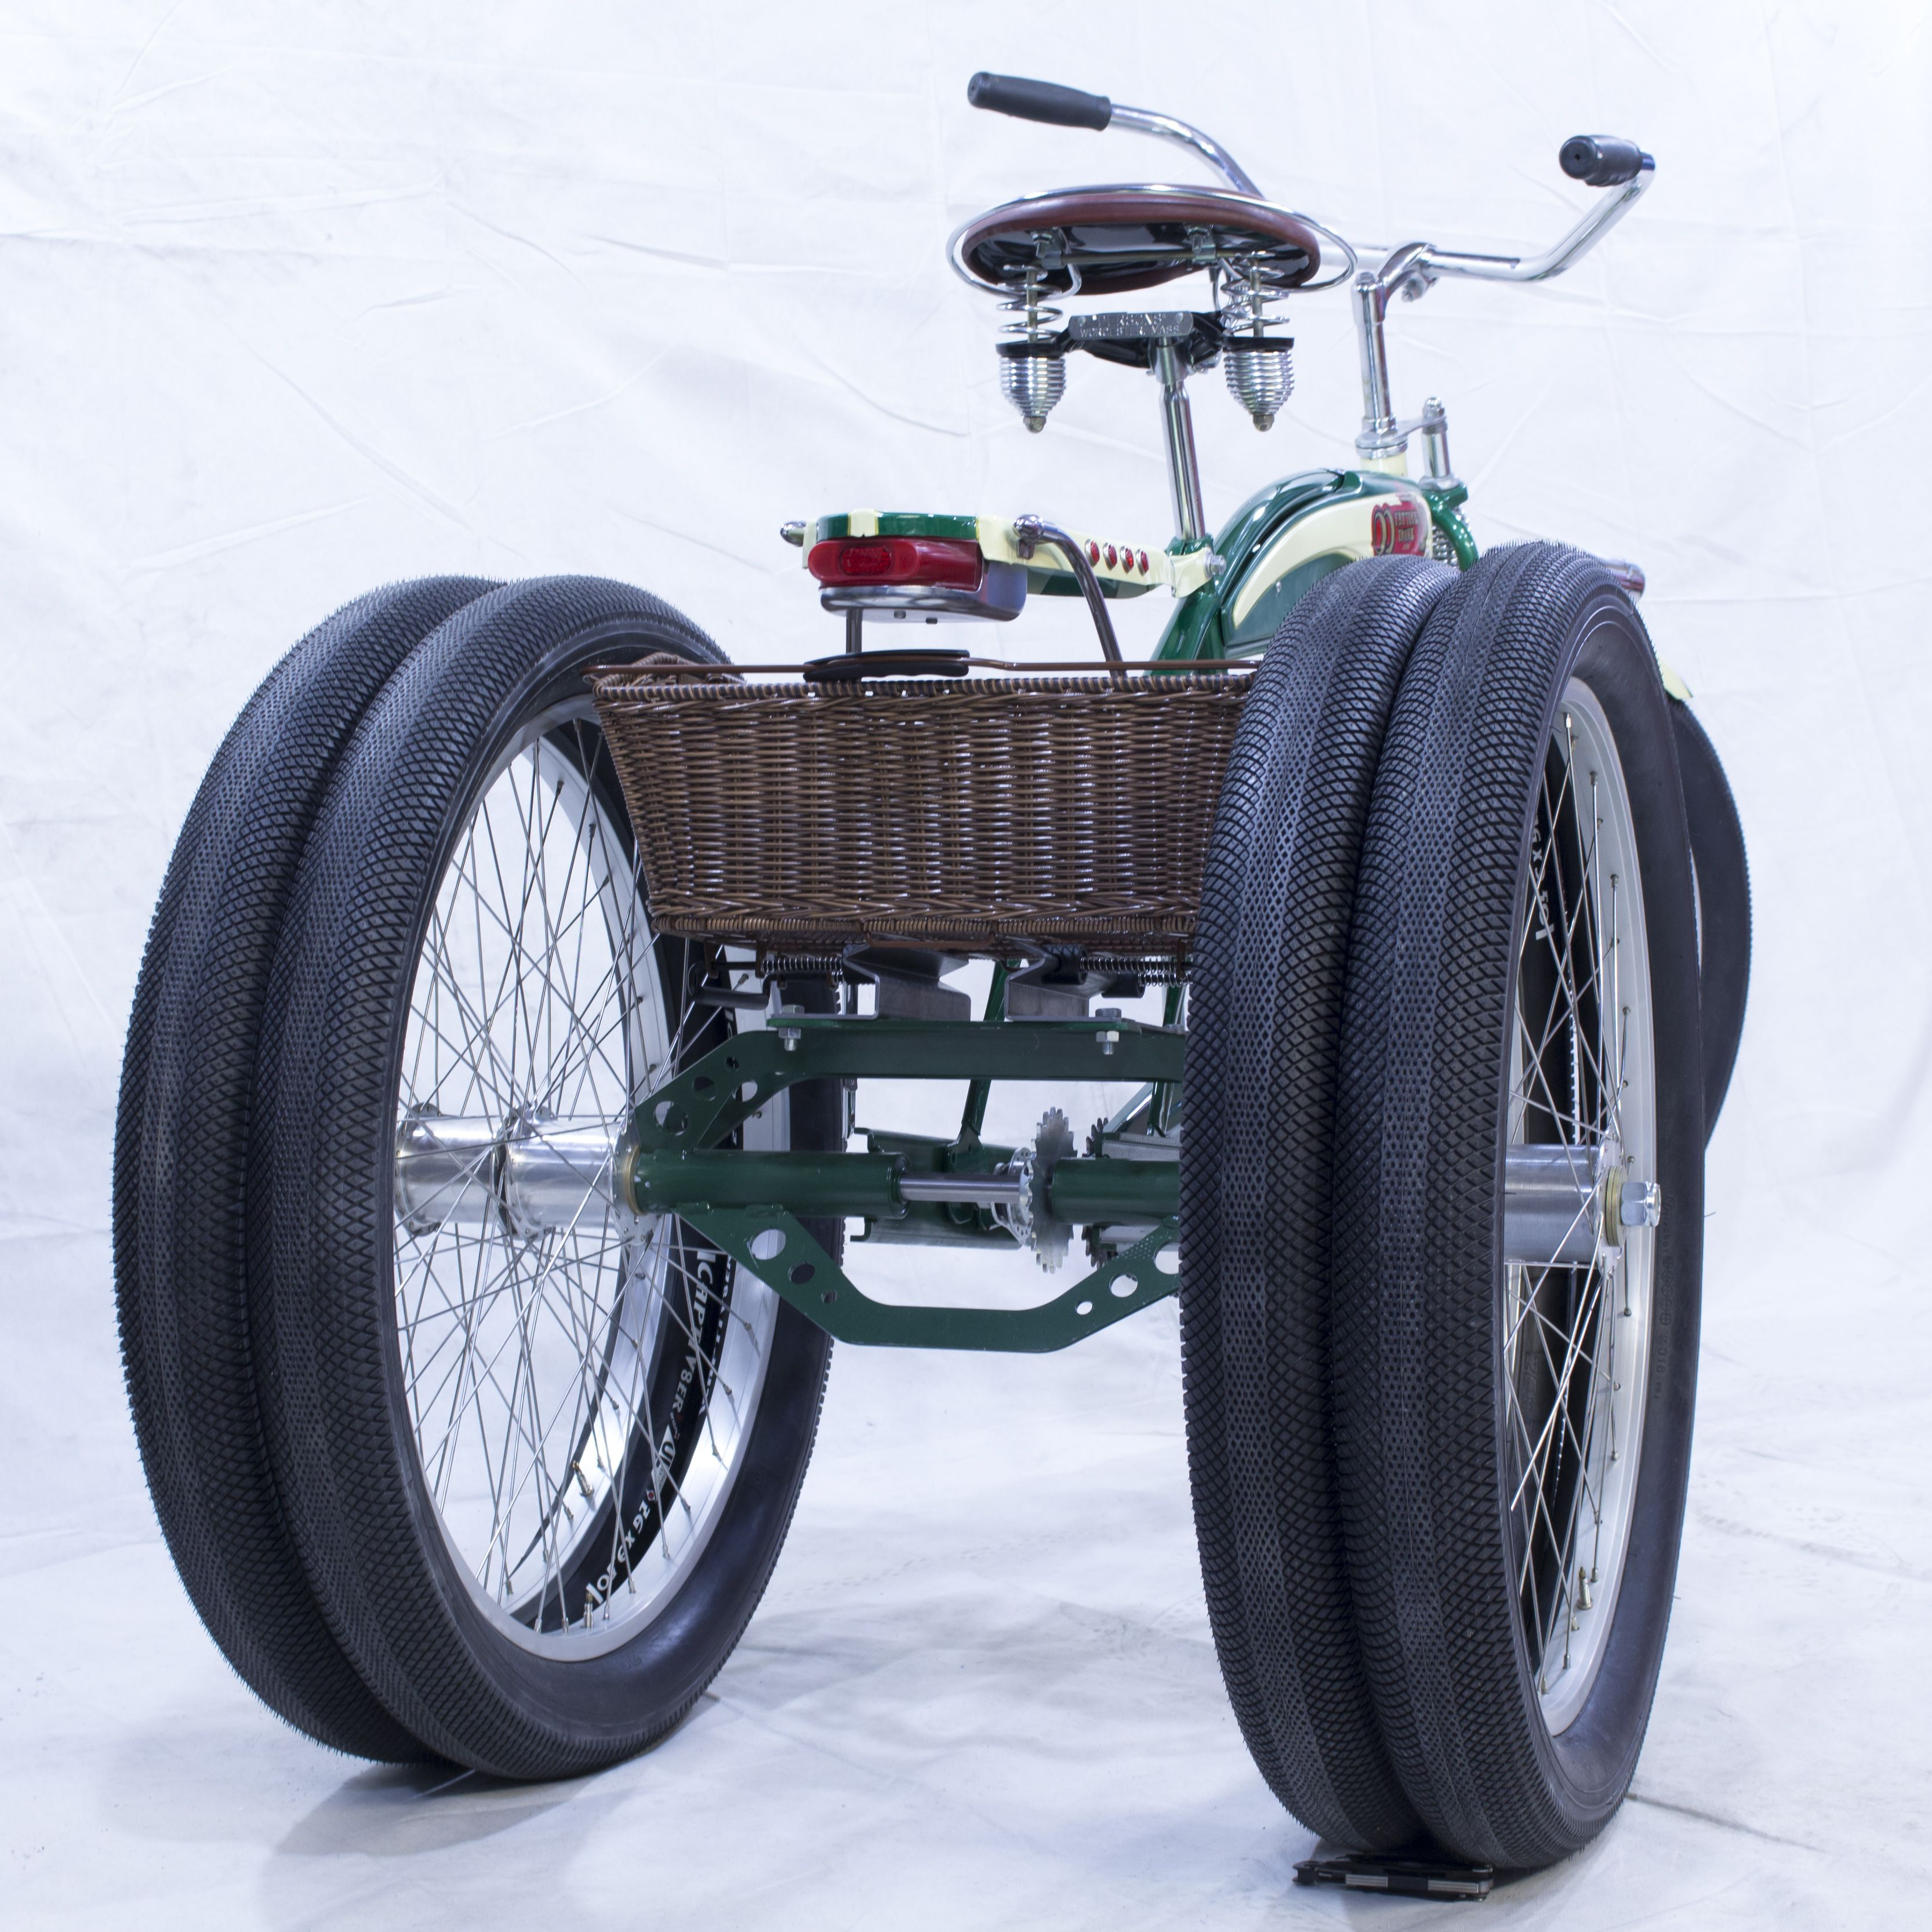 Beach Cruiser Fat Tire Trike, #fatbike